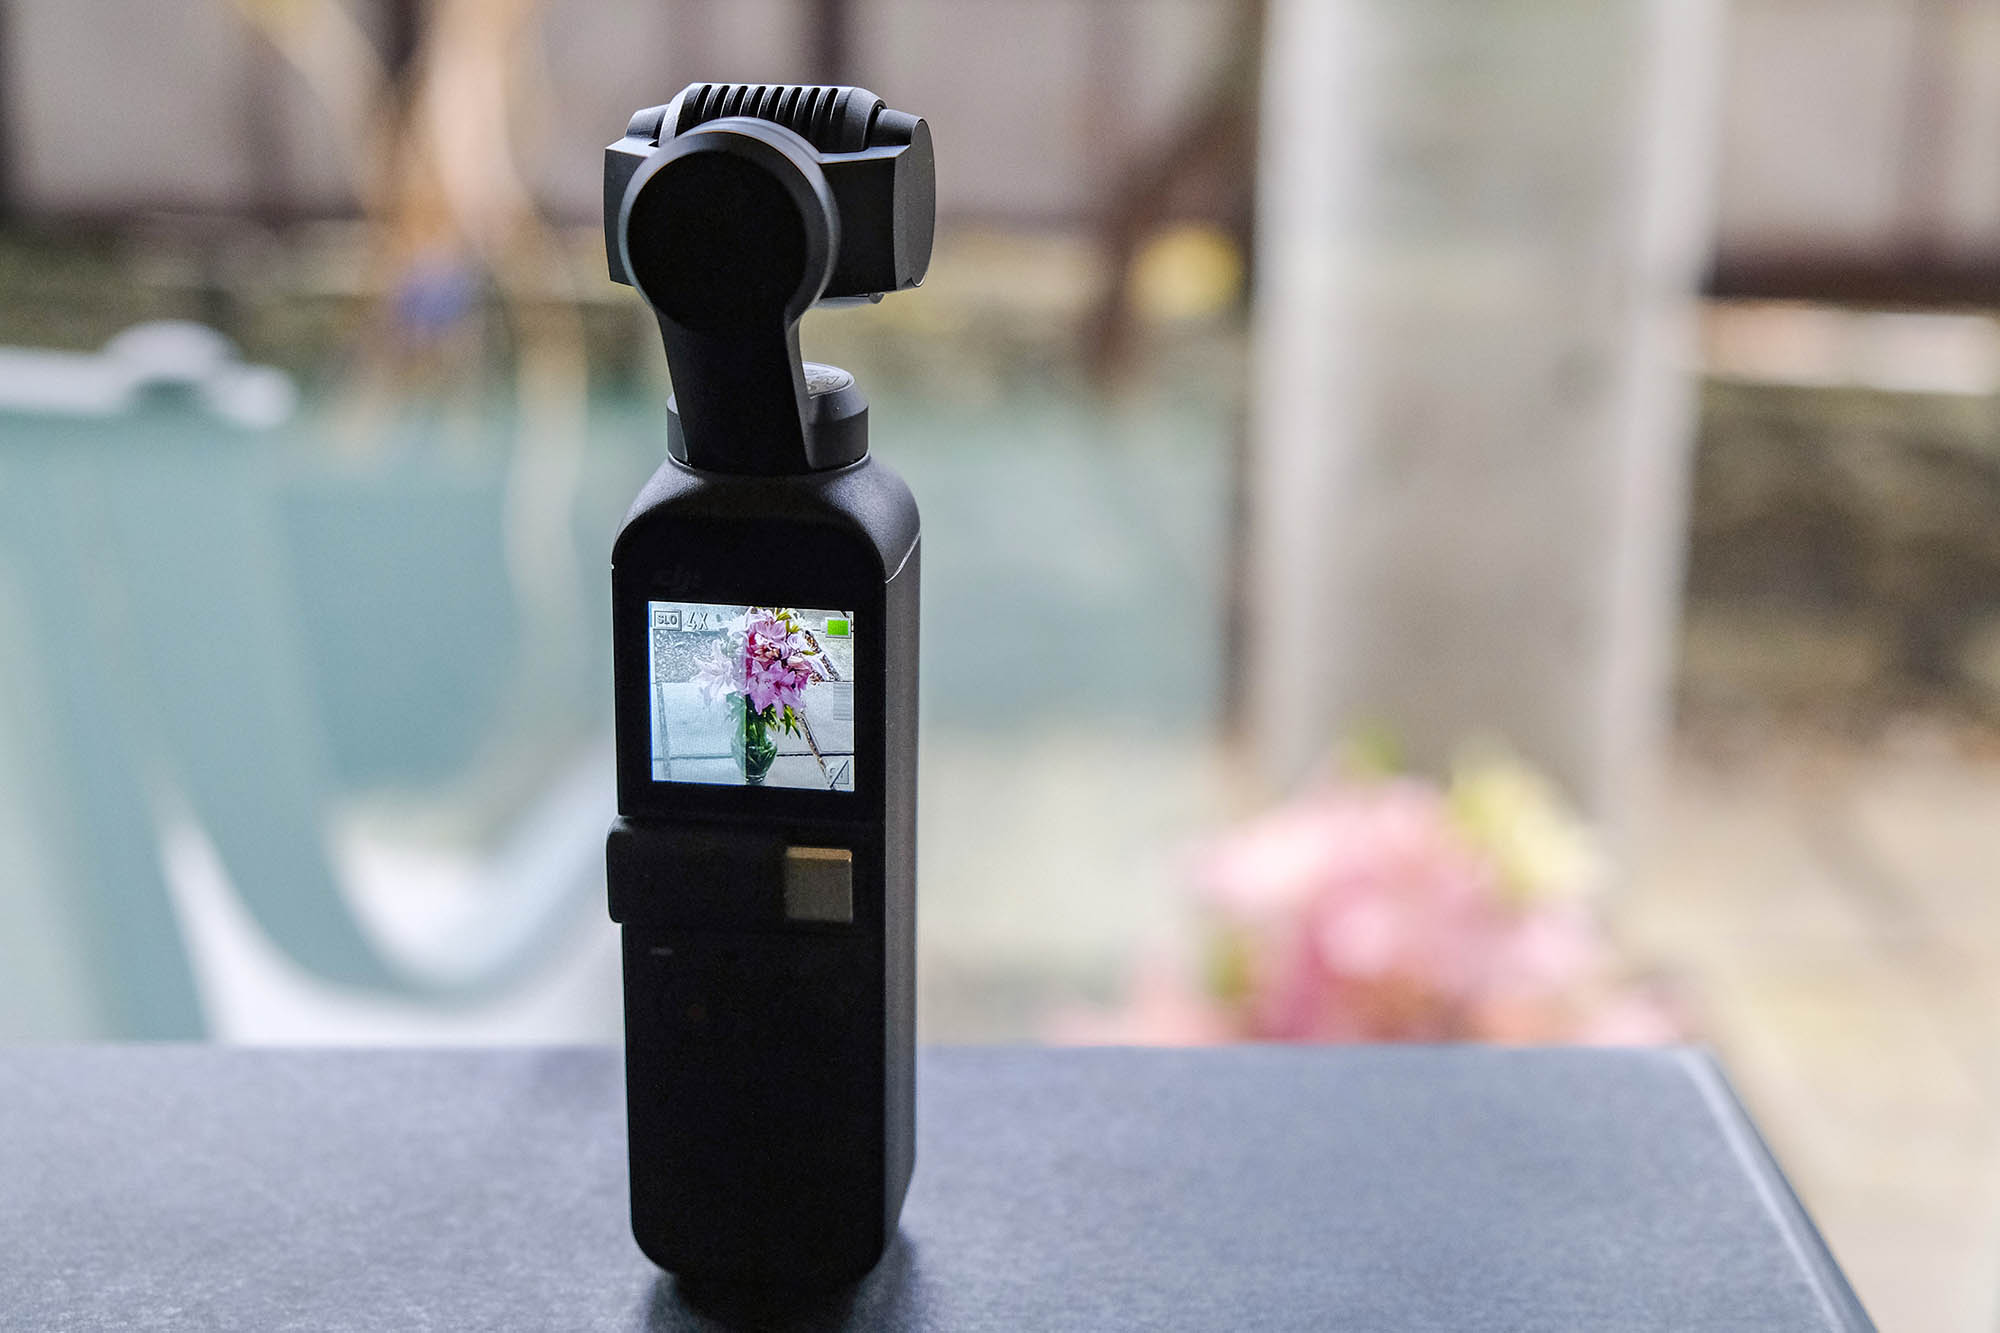 https://i0.wp.com/digital-photography-school.com/wp-content/uploads/2019/03/DJI-Osmo-Pocket-05.jpg?resize=2000%2C1333&ssl=1